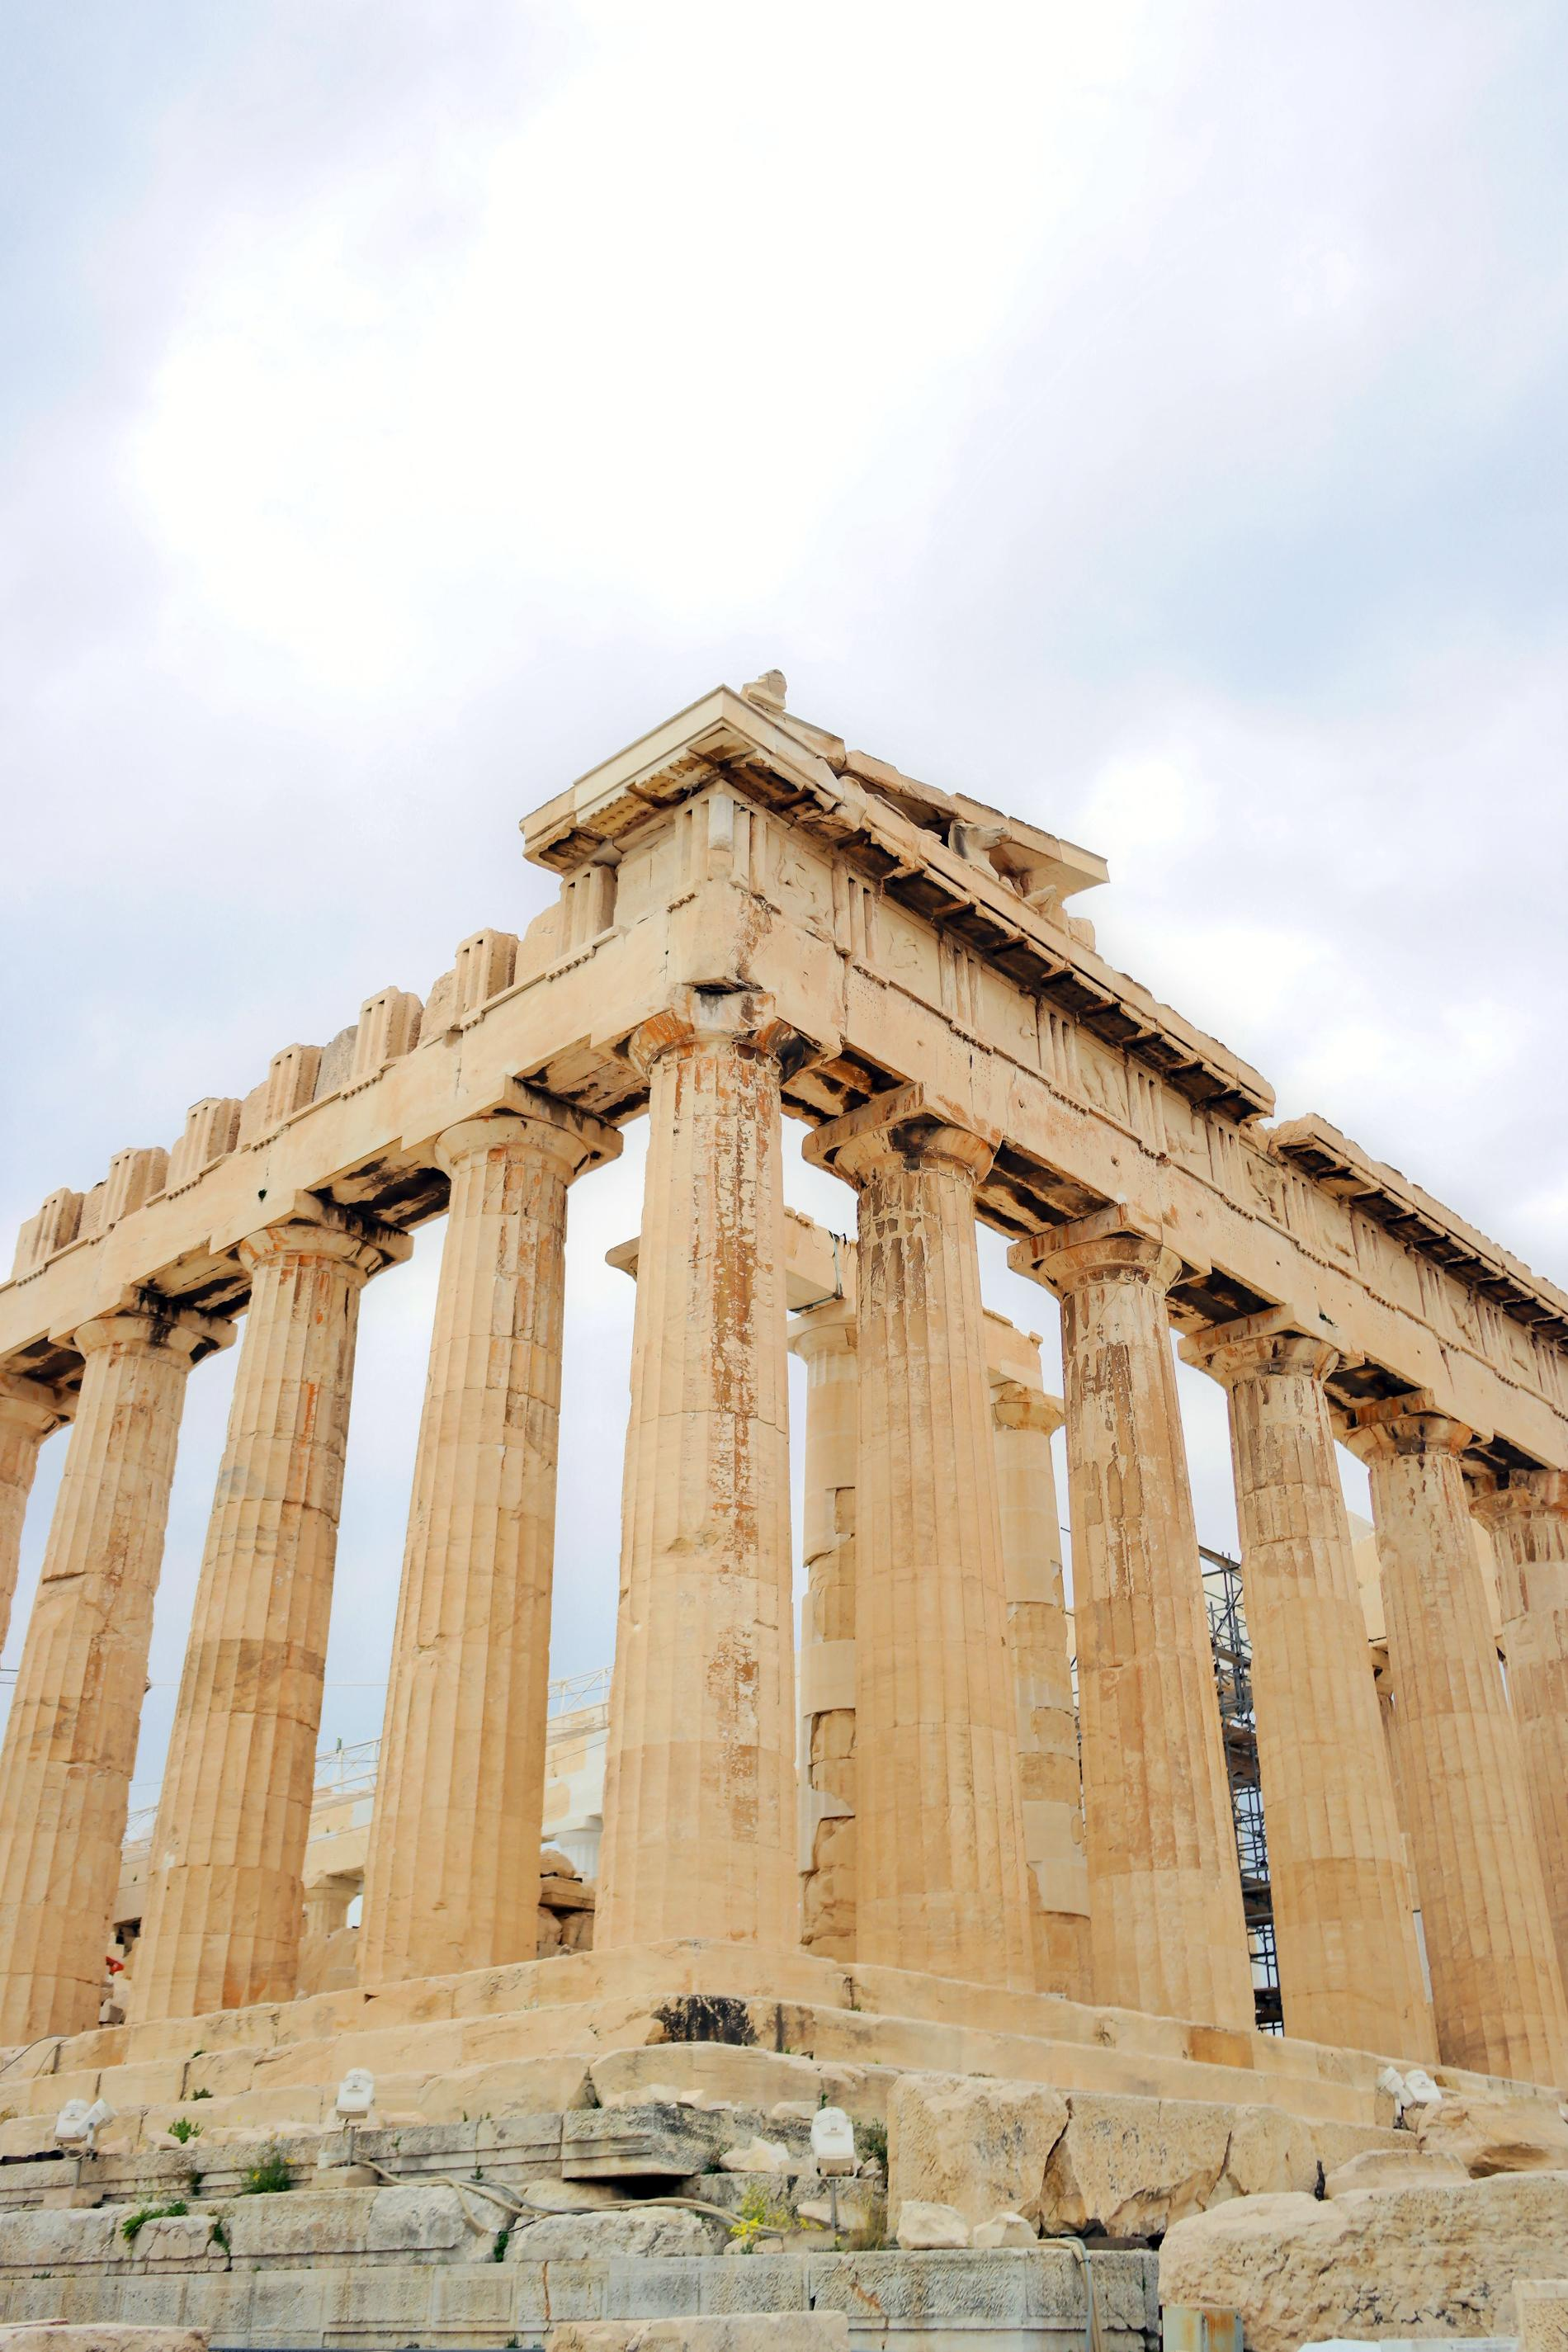 Parthenon, the magnificent Doric temple dedicated to the goddess Athena. Source: Truevoyagers